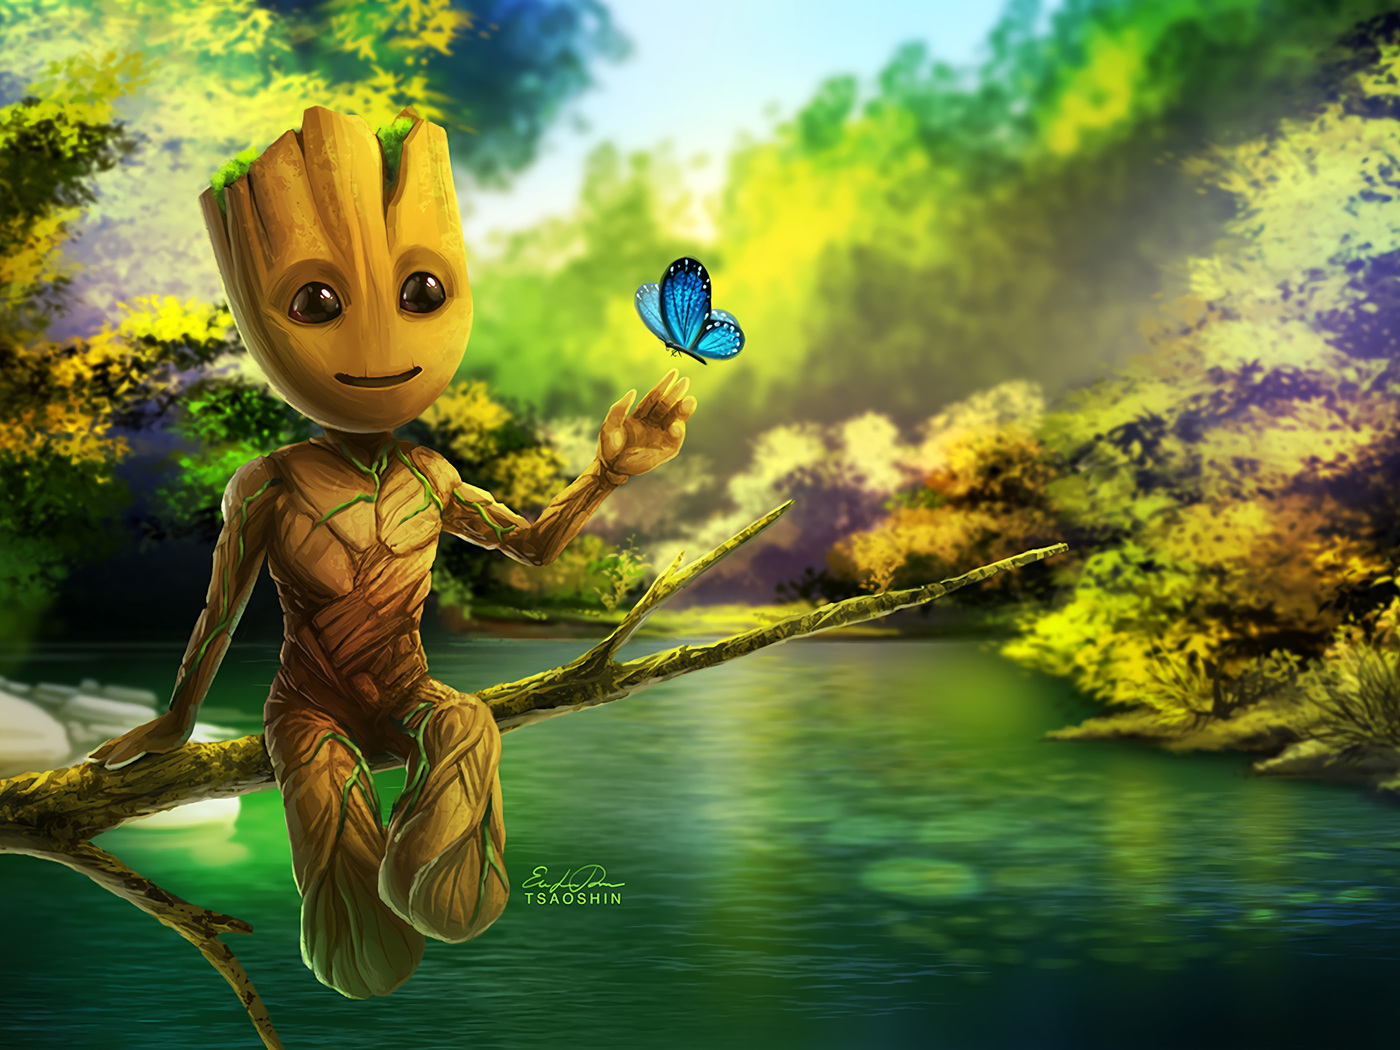 1400x1050 Baby Groot Artwork 1400x1050 Resolution HD 4k